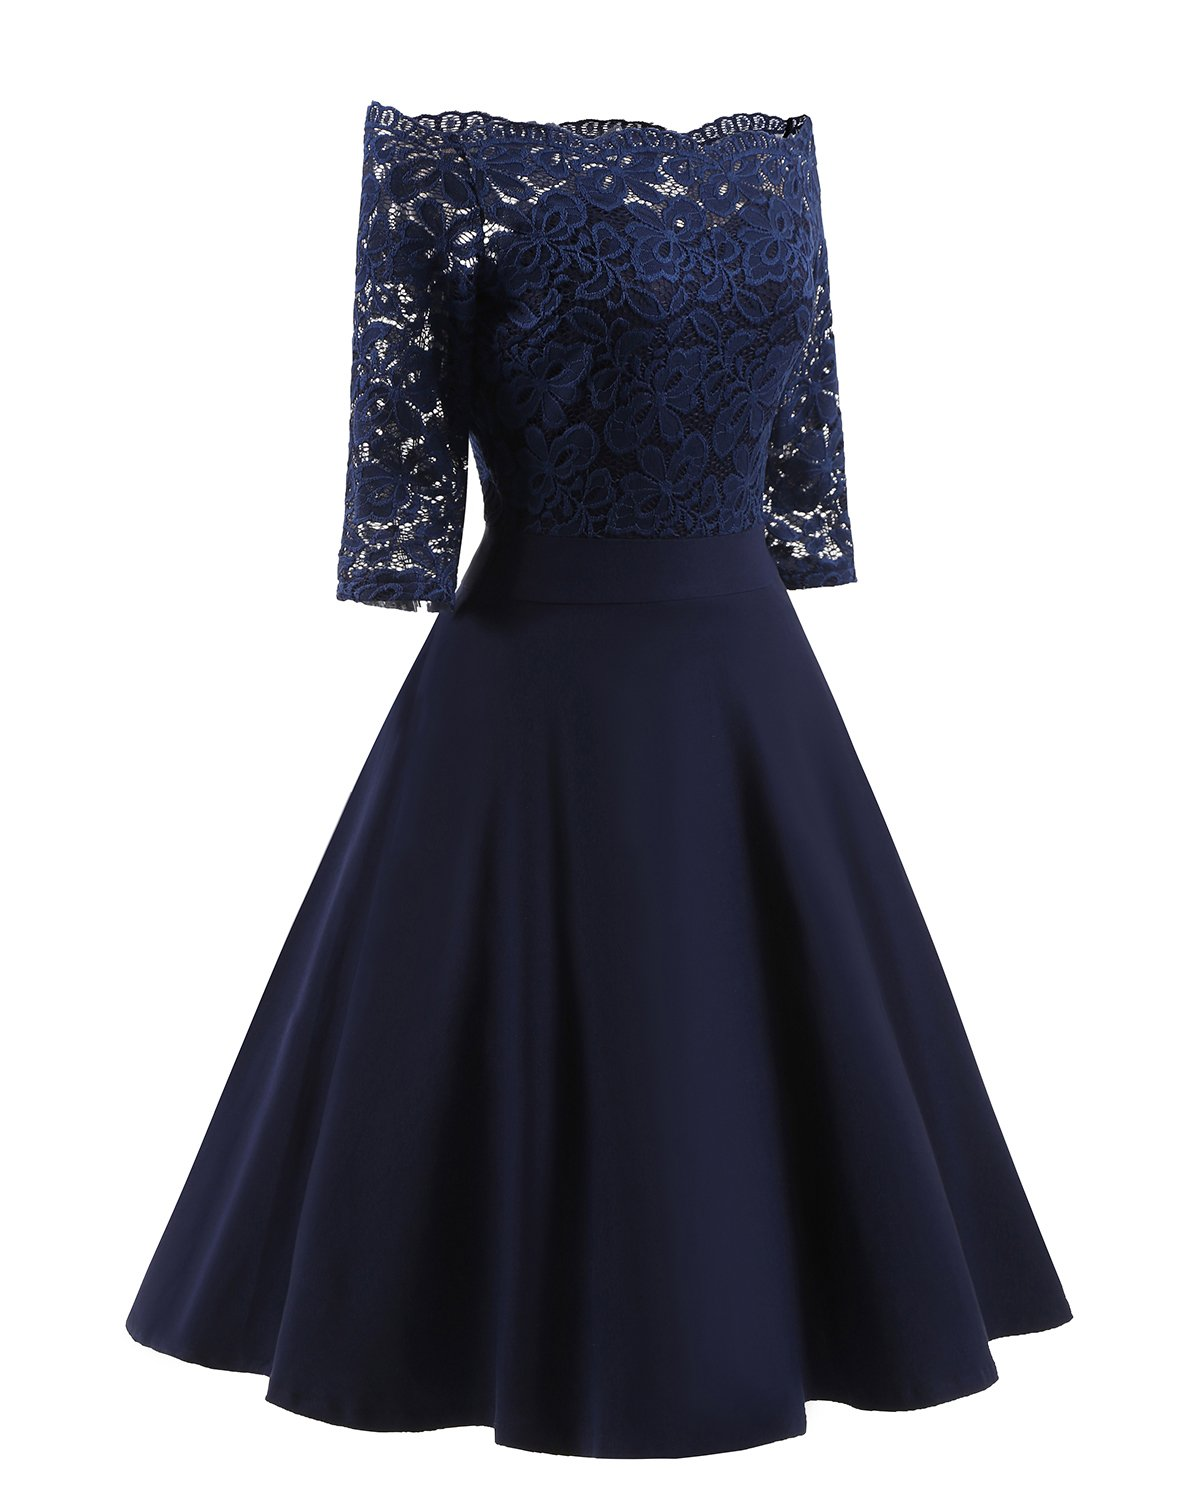 Women's Vintage Dresses Lace Floral Boat Neck 3/4 Long Sleeve Swing Dress A-Line Cocktail Party Prom (XL, Blue)